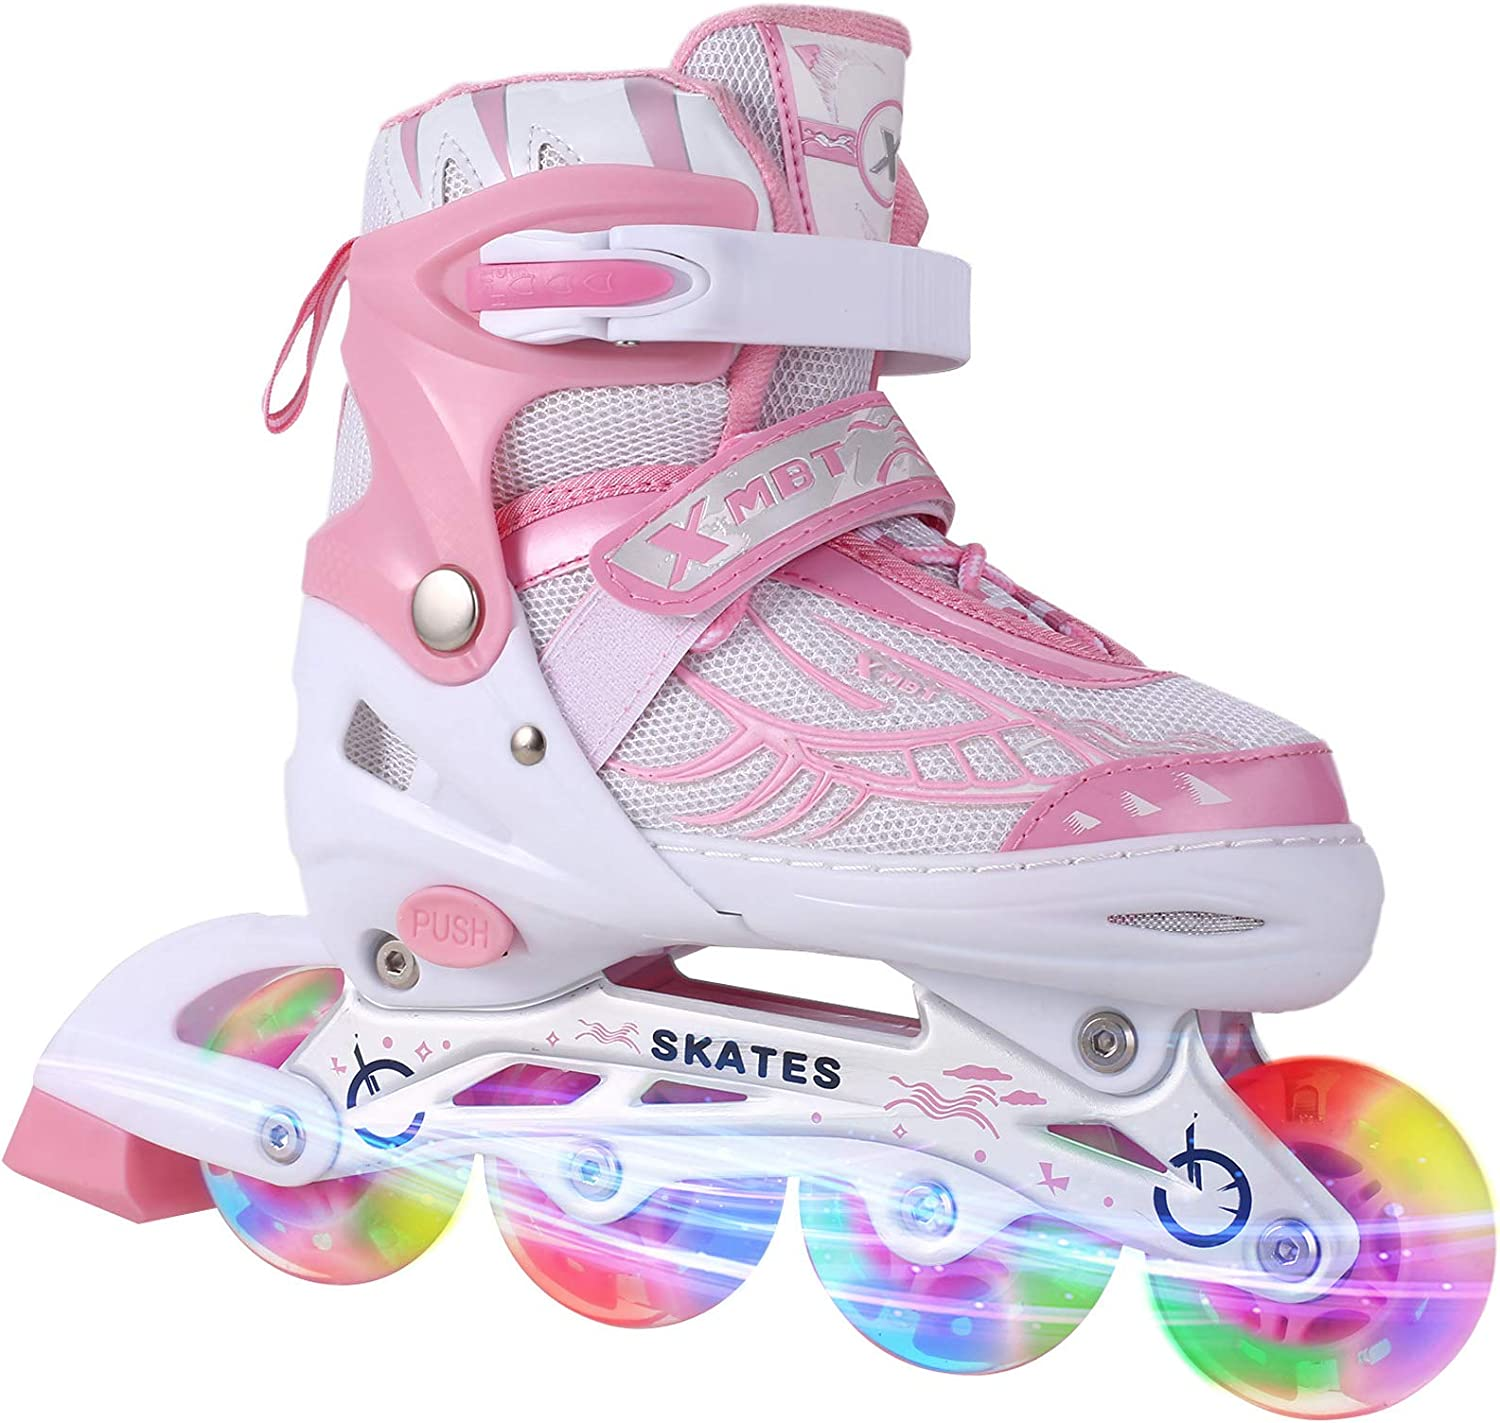 Aceshin Adjustable Inline Skates for Ill Kids and Durable Max 82% OFF Safe Indianapolis Mall